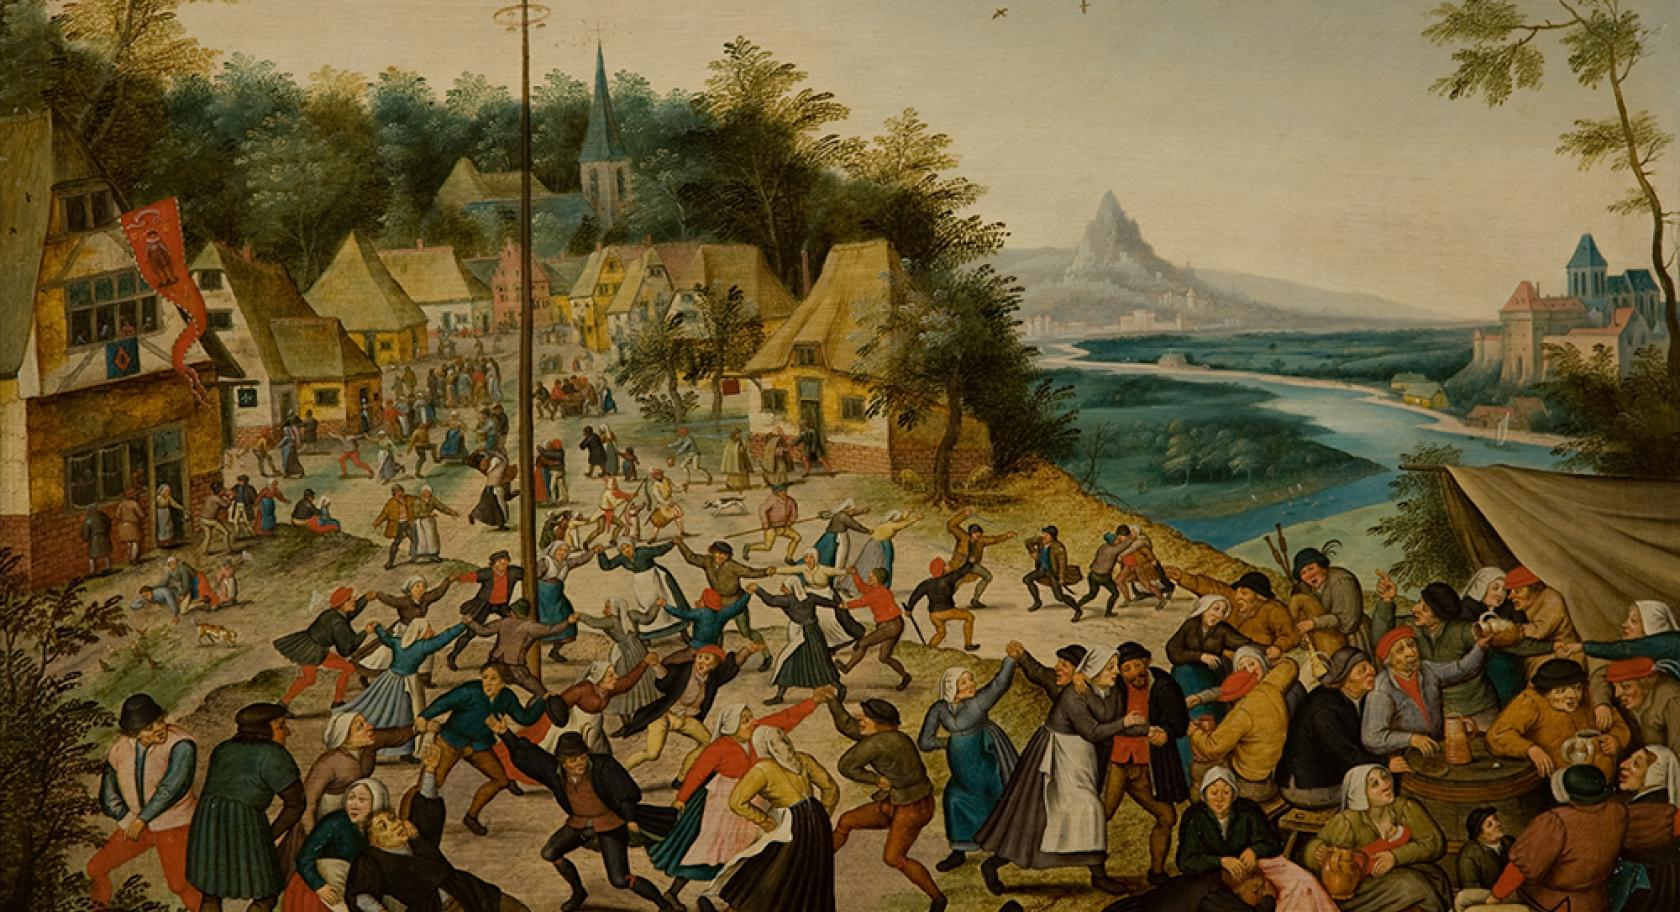 Dance Around the Maypole, Pieter Brueghel the Younger, Flemish, 1625-1630, oil on panel, UMFA1992.020.001